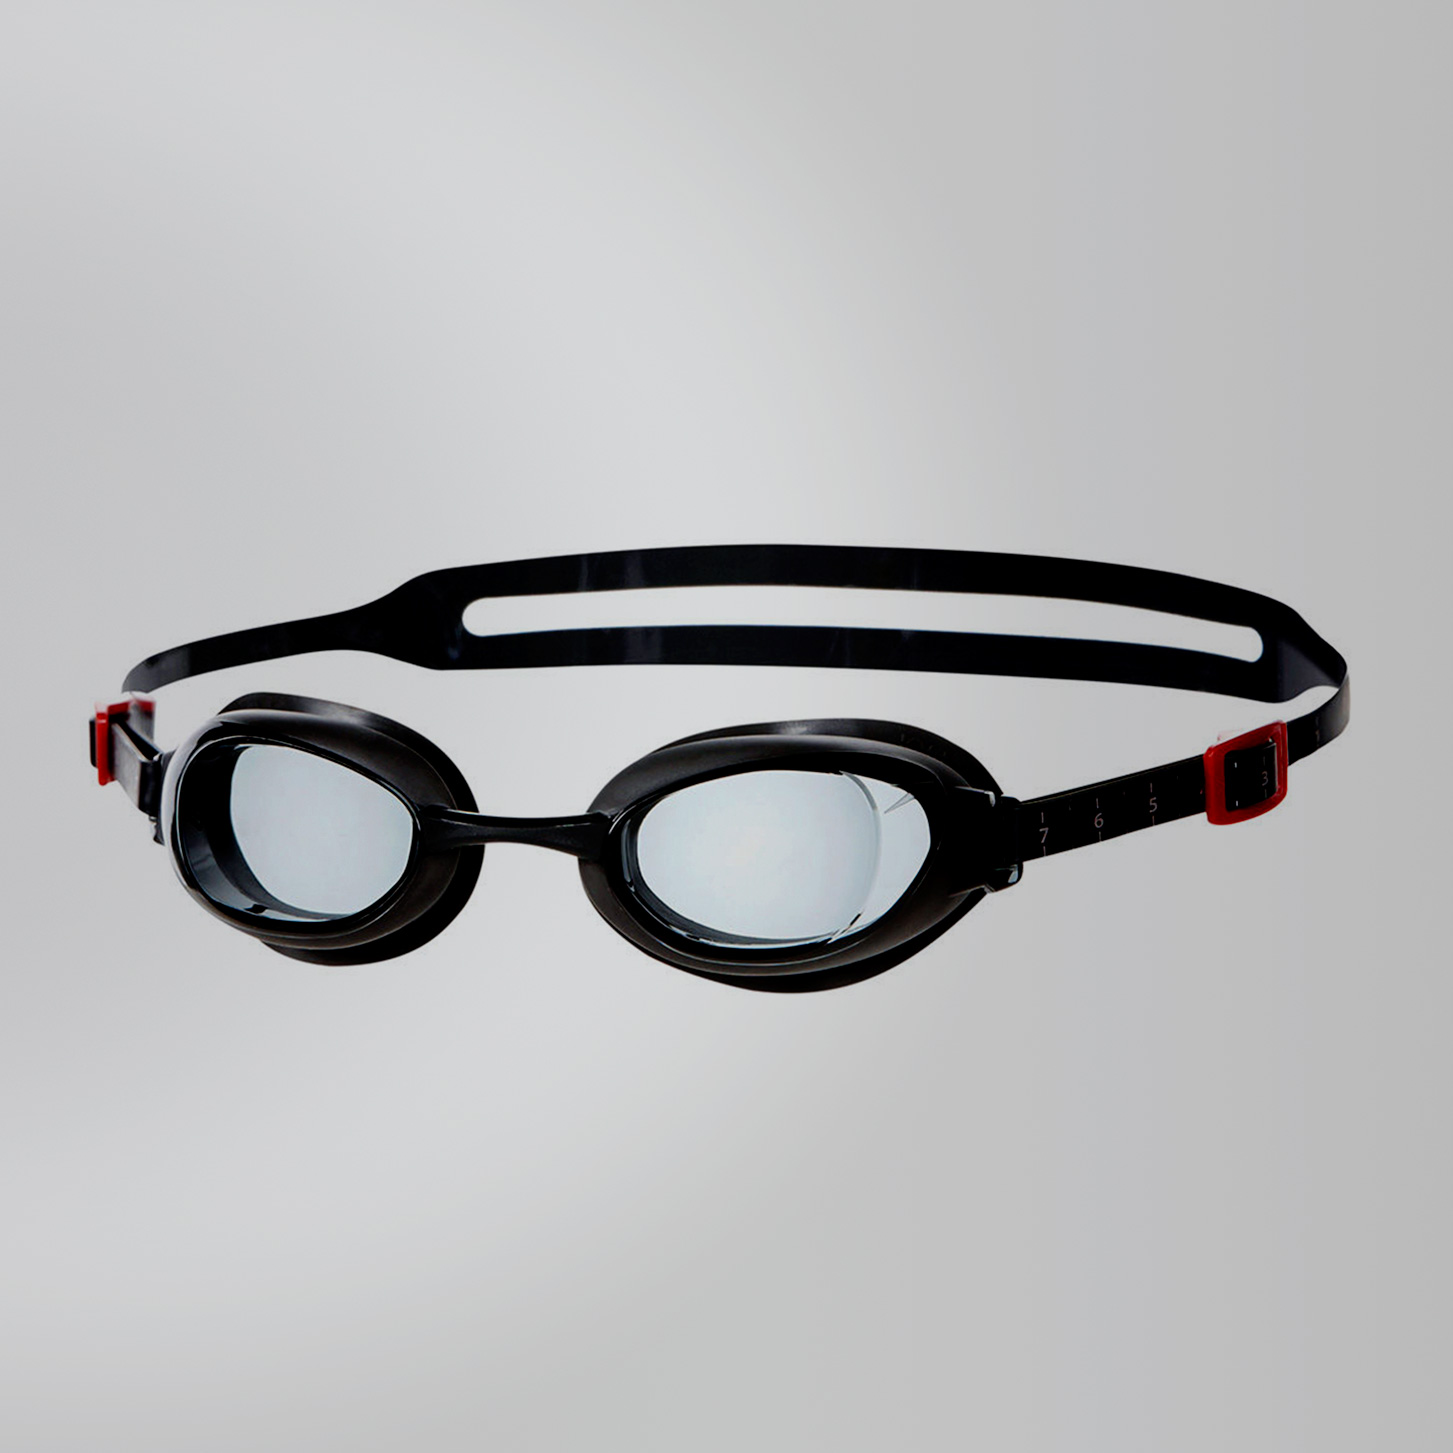 1453x1453 Iqfit Goggle Technology Innovation Explore Speedo